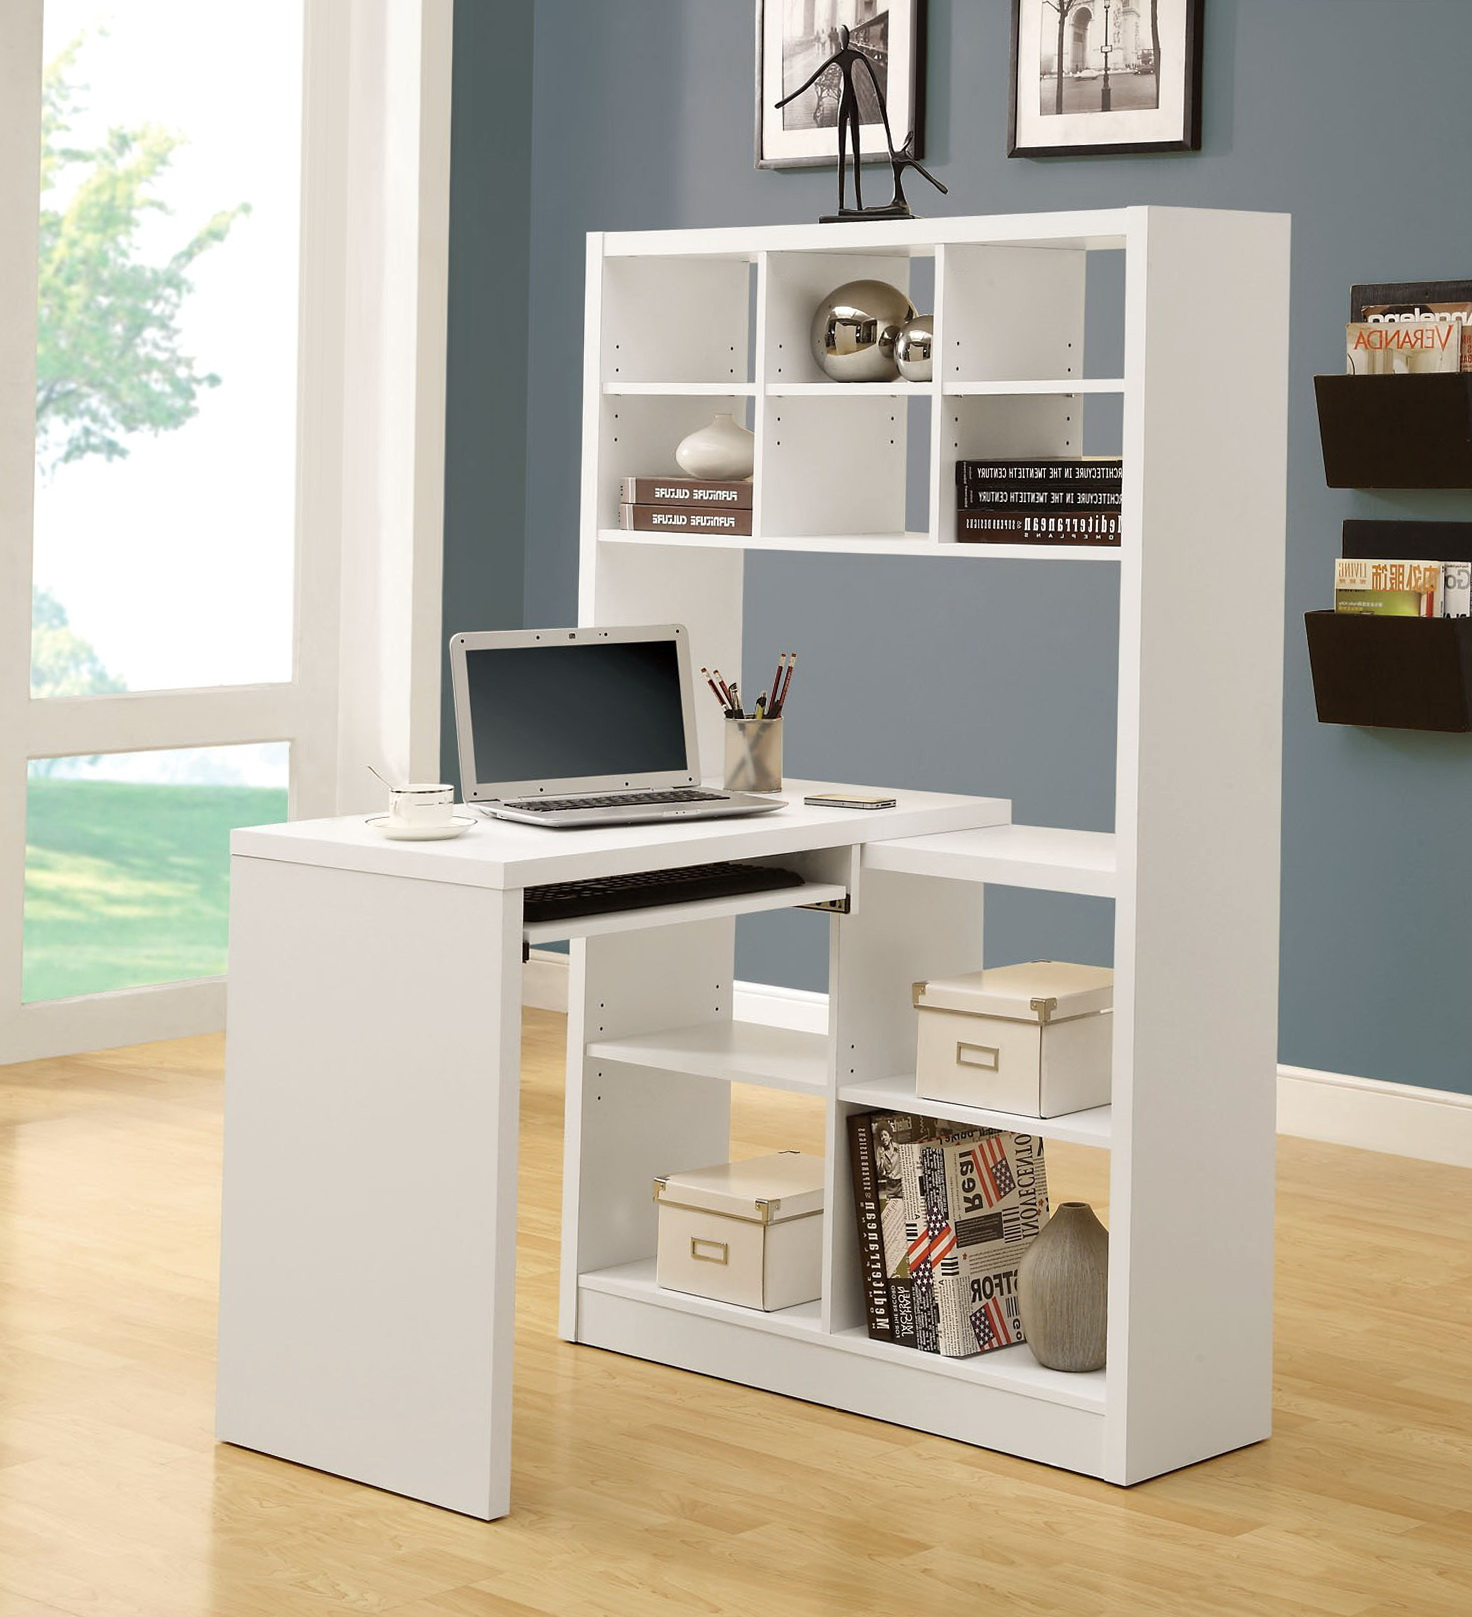 Permalink to White Desk With Bookshelf